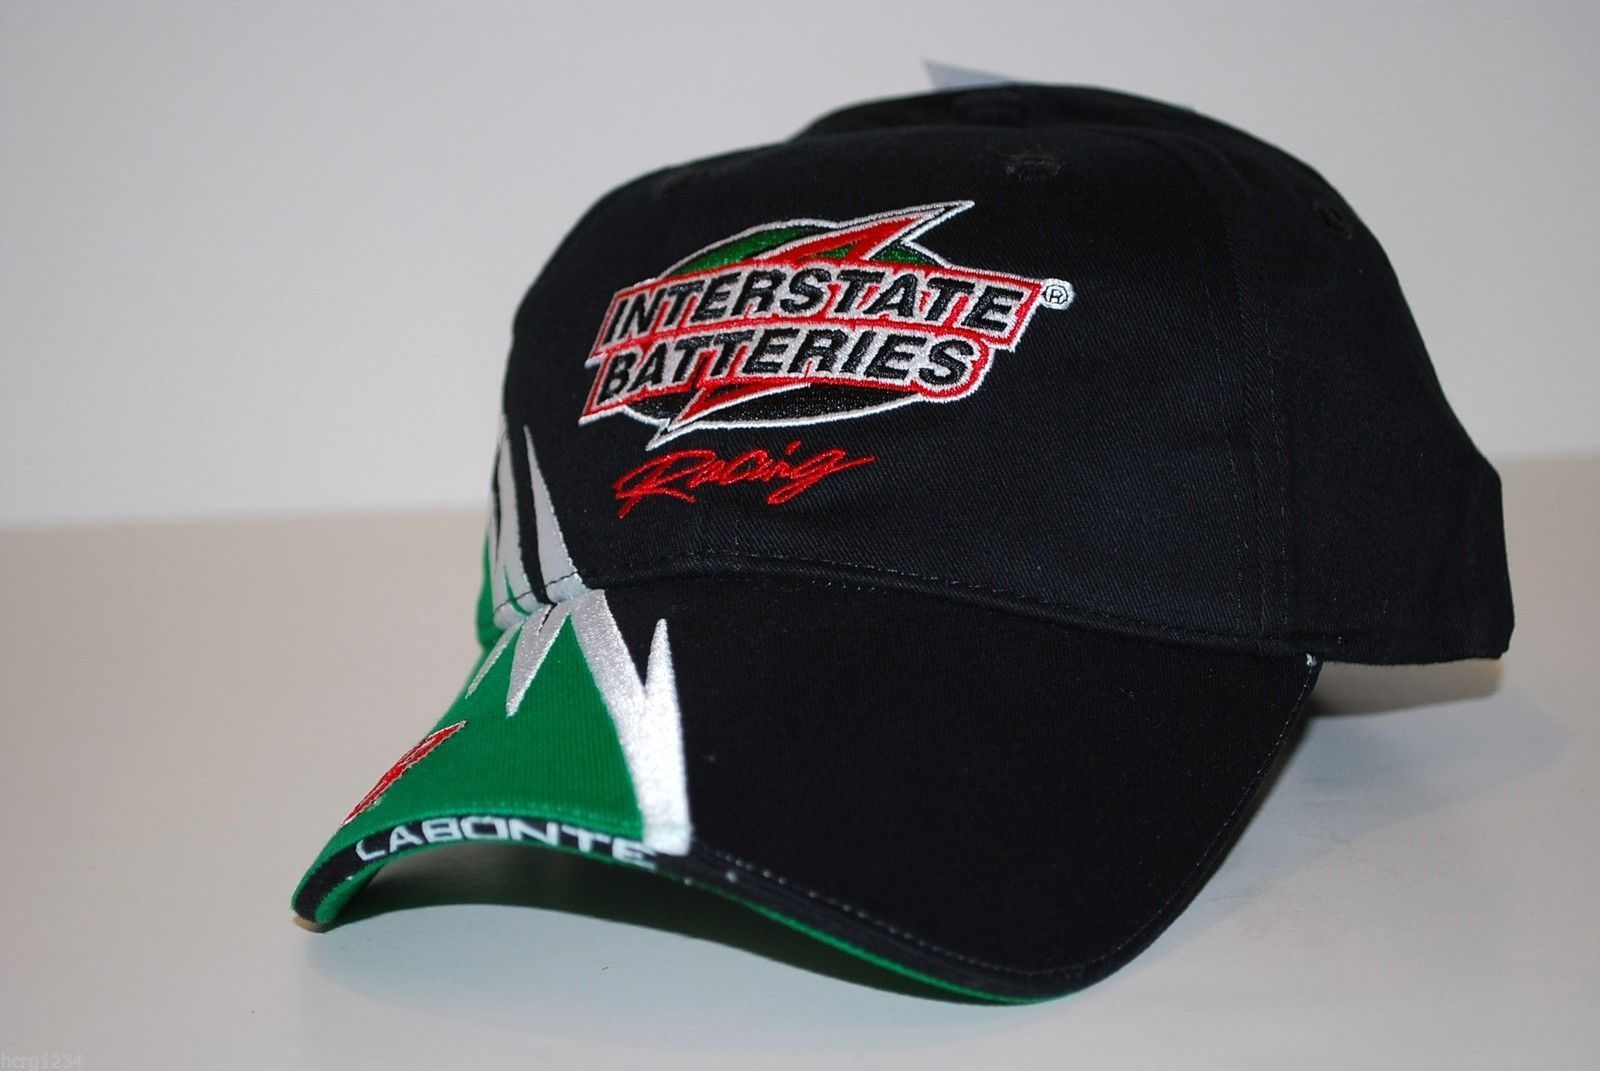 NASCAR Chase Authentics Interstate Batteries #18 Bobby Labonte Racing Cap Hat